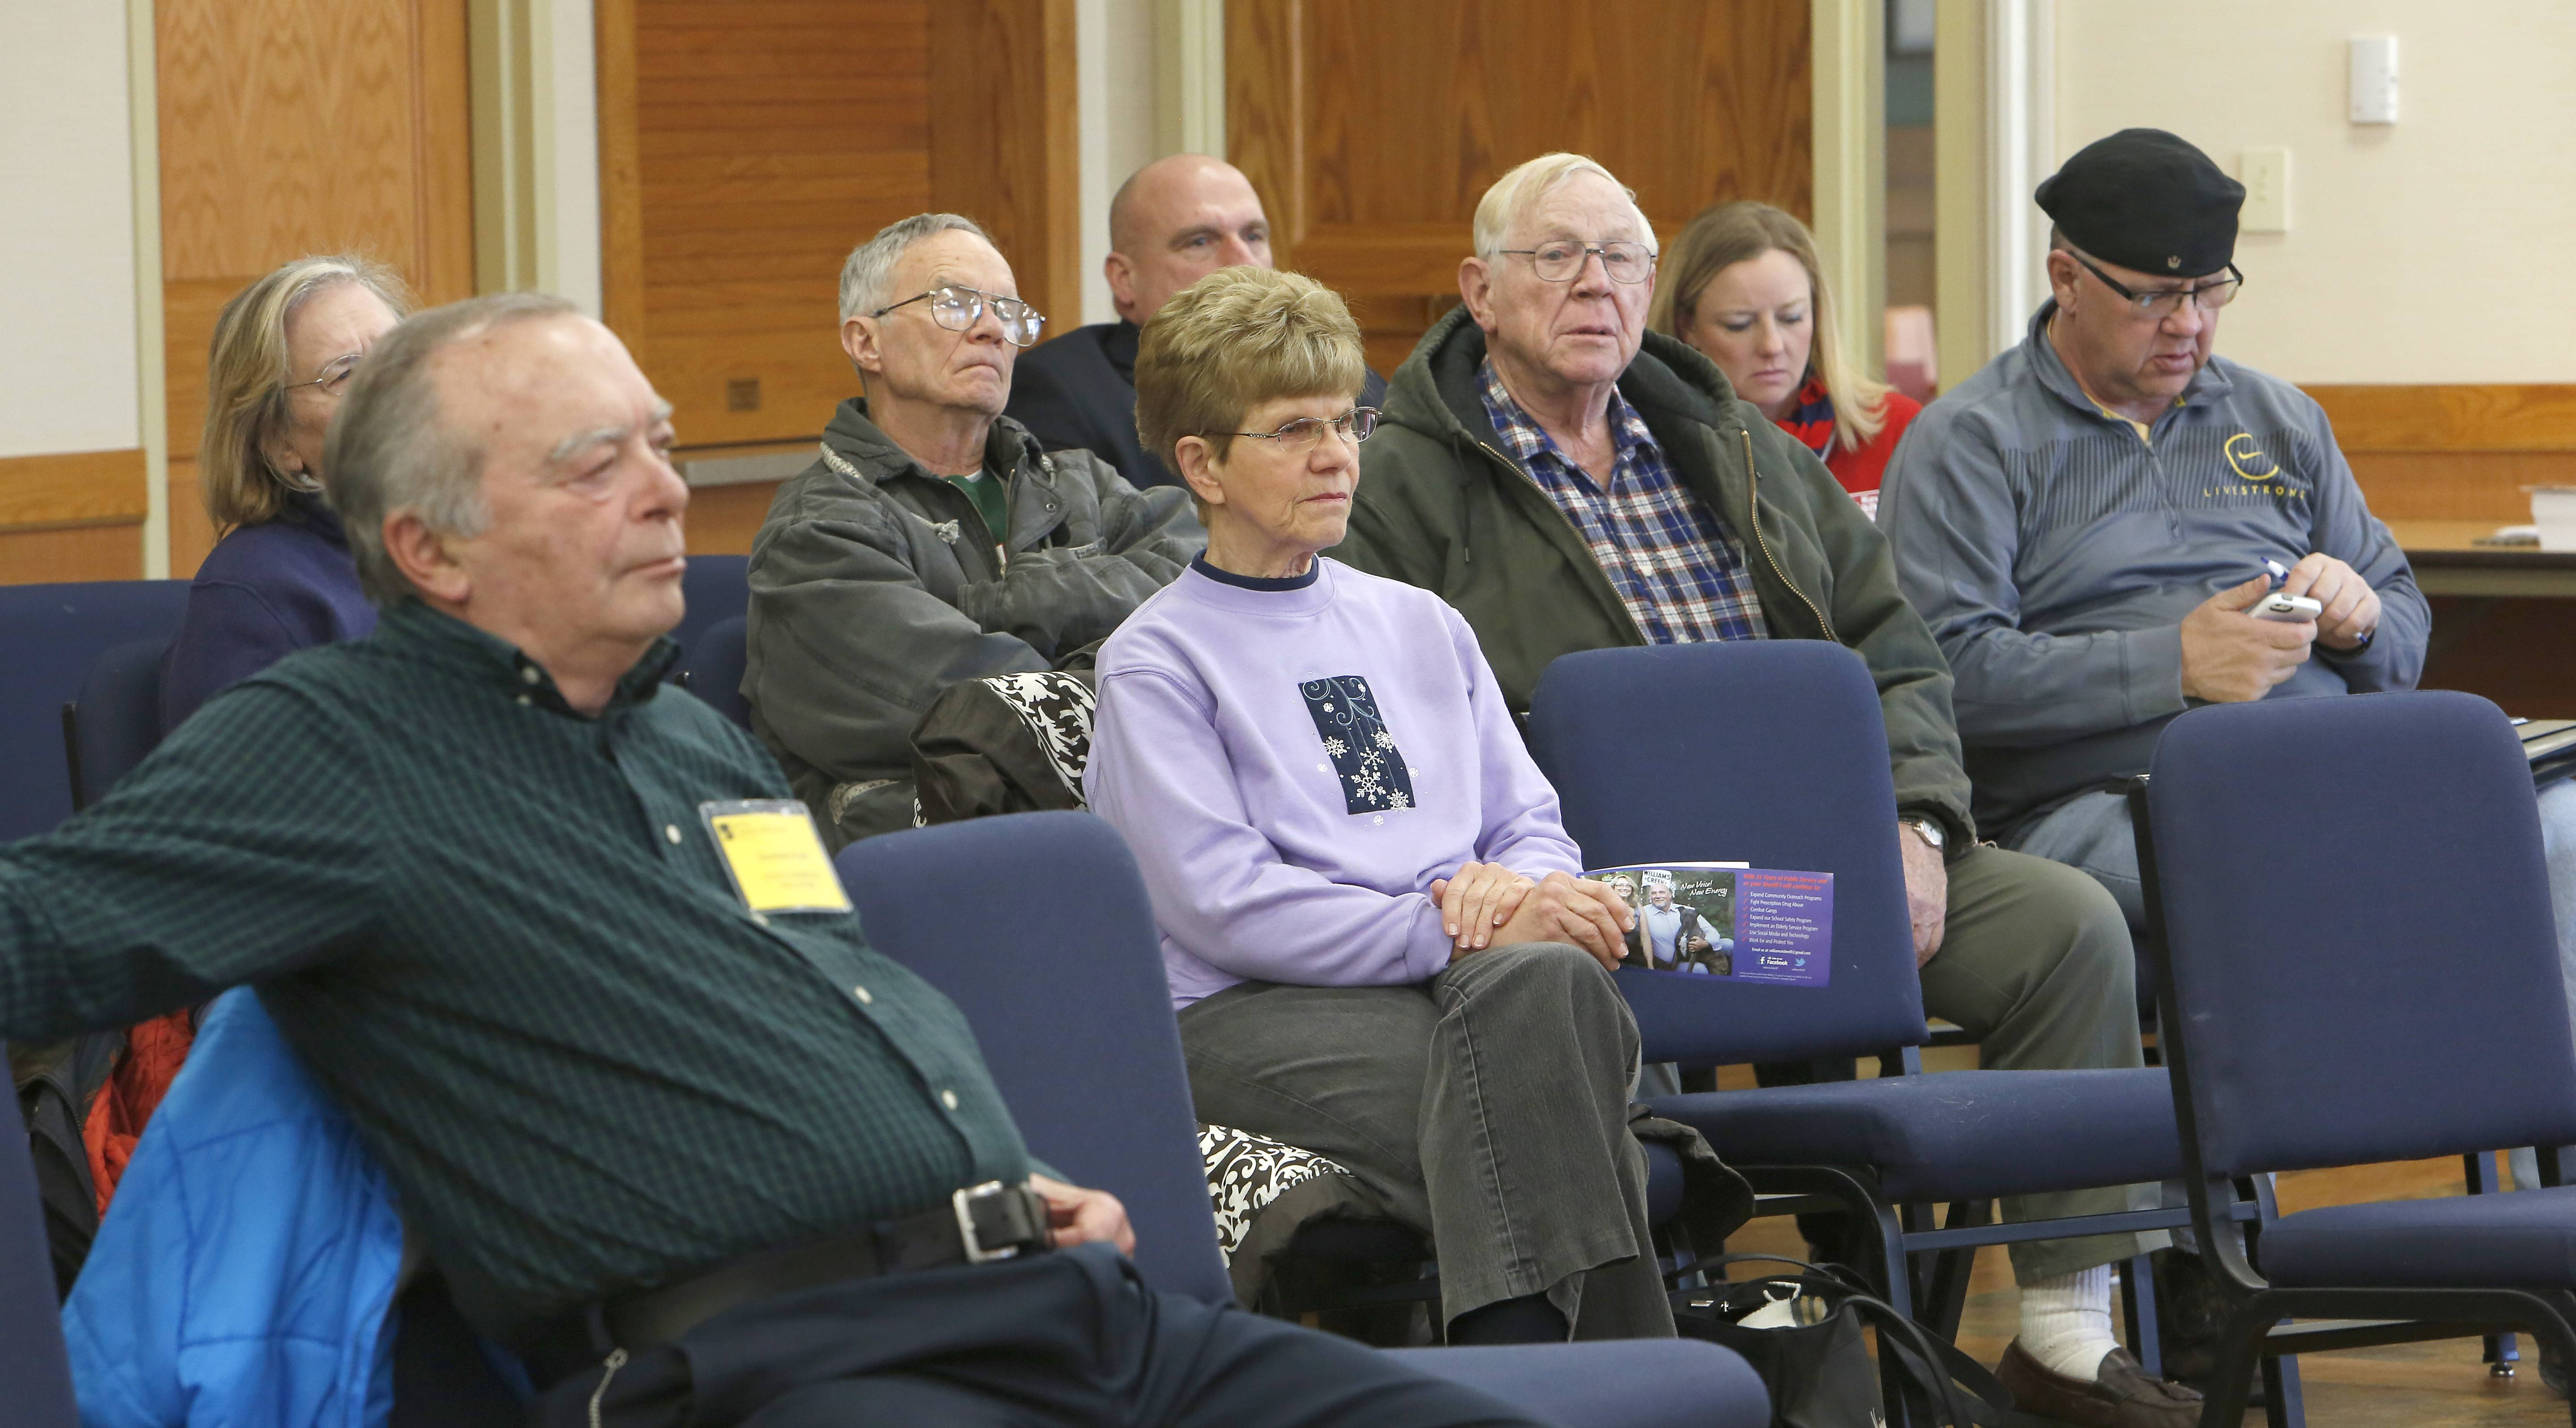 More than 20 people gathered Thursday to listen and ask questions of candidates for the Republican nomination for the state's 65th House District seat at Sun City in Huntley.